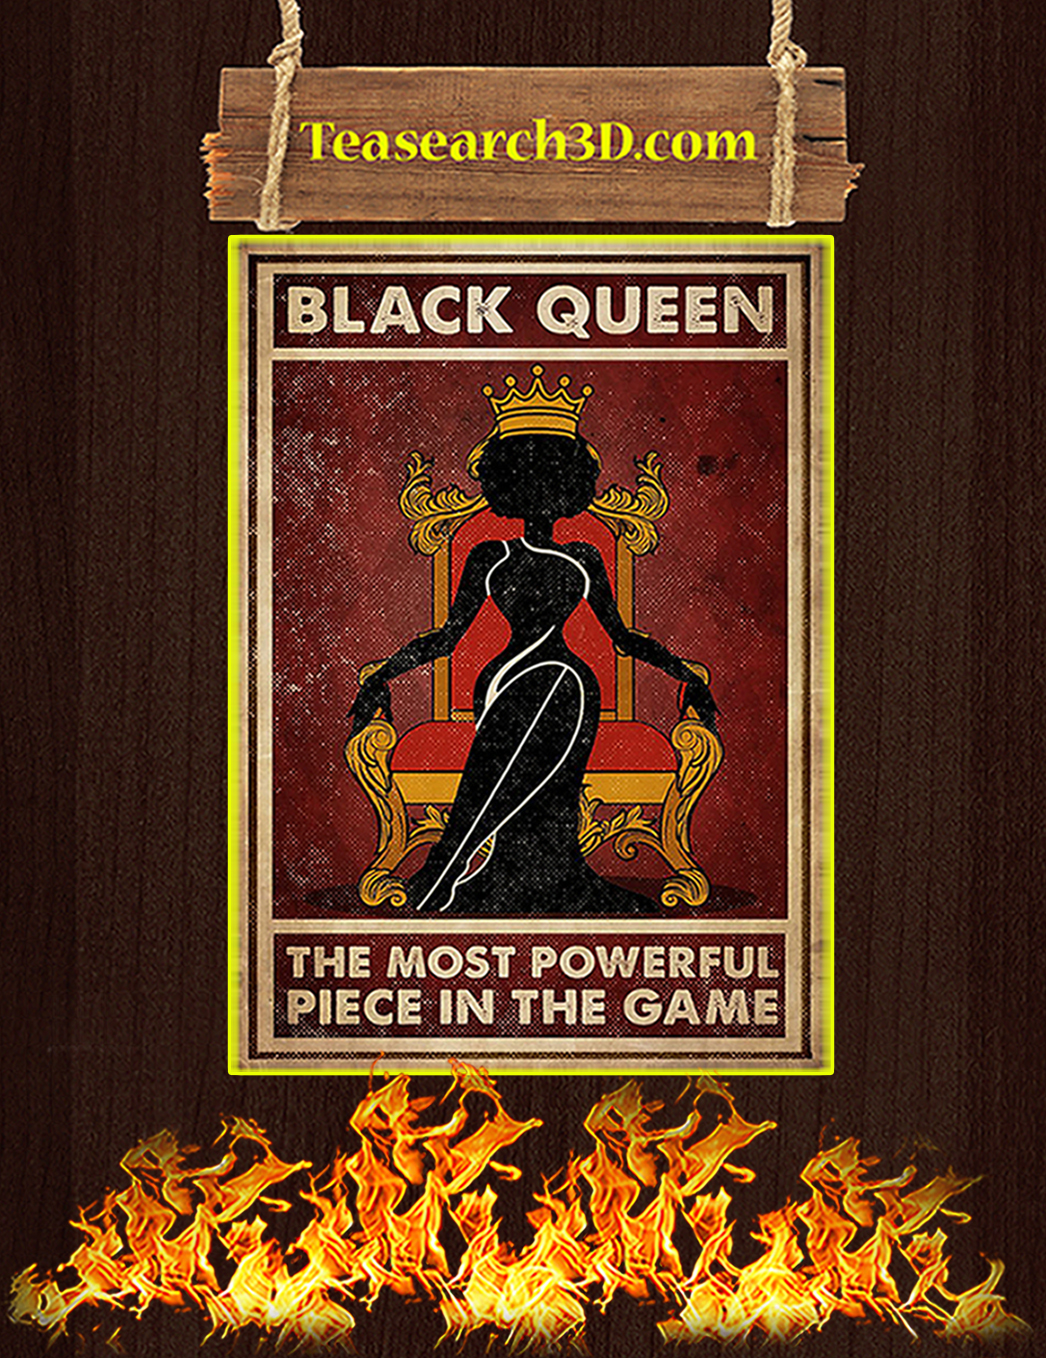 Black queen the most powerful piece in the game poster A1